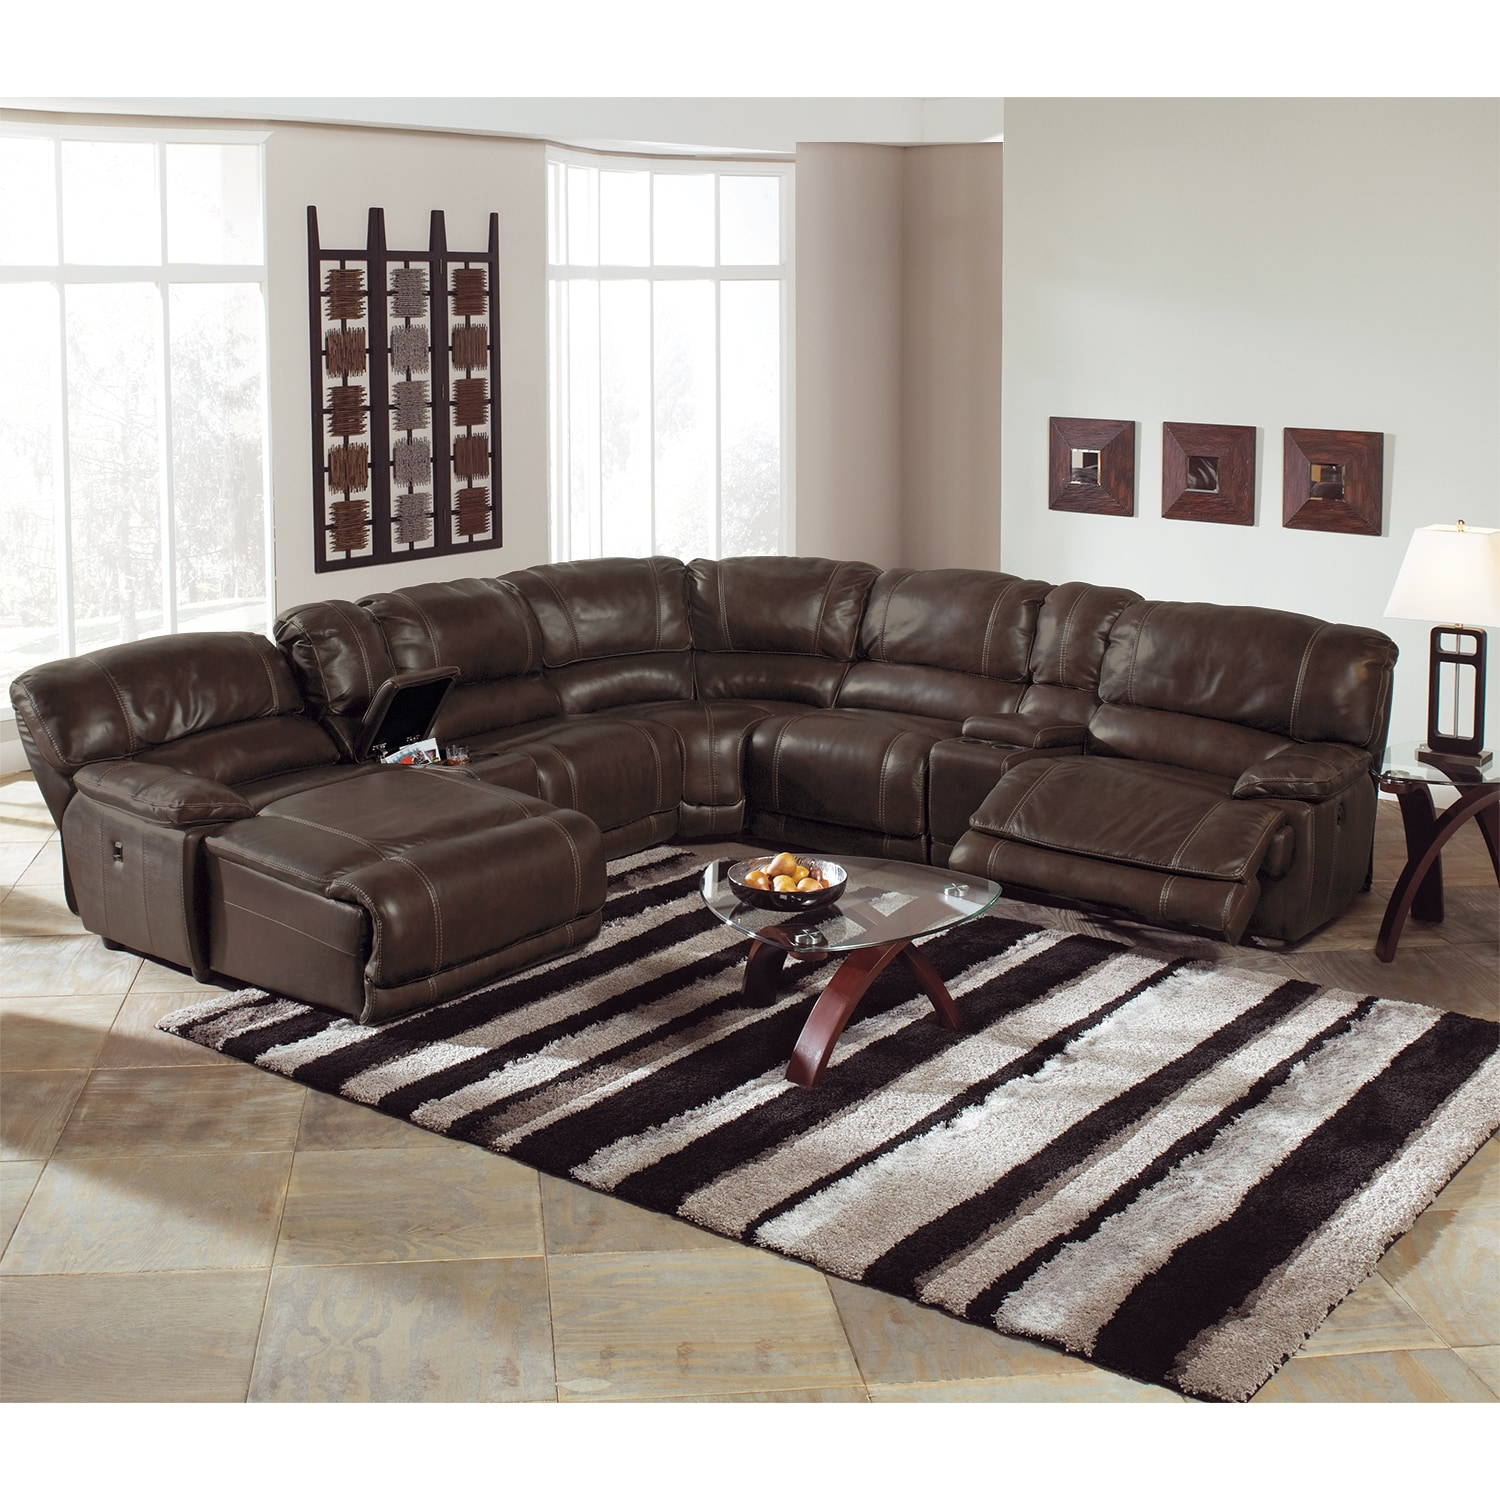 St malo 6 piece power reclining sectional with left for Brown sectional sofa with chaise